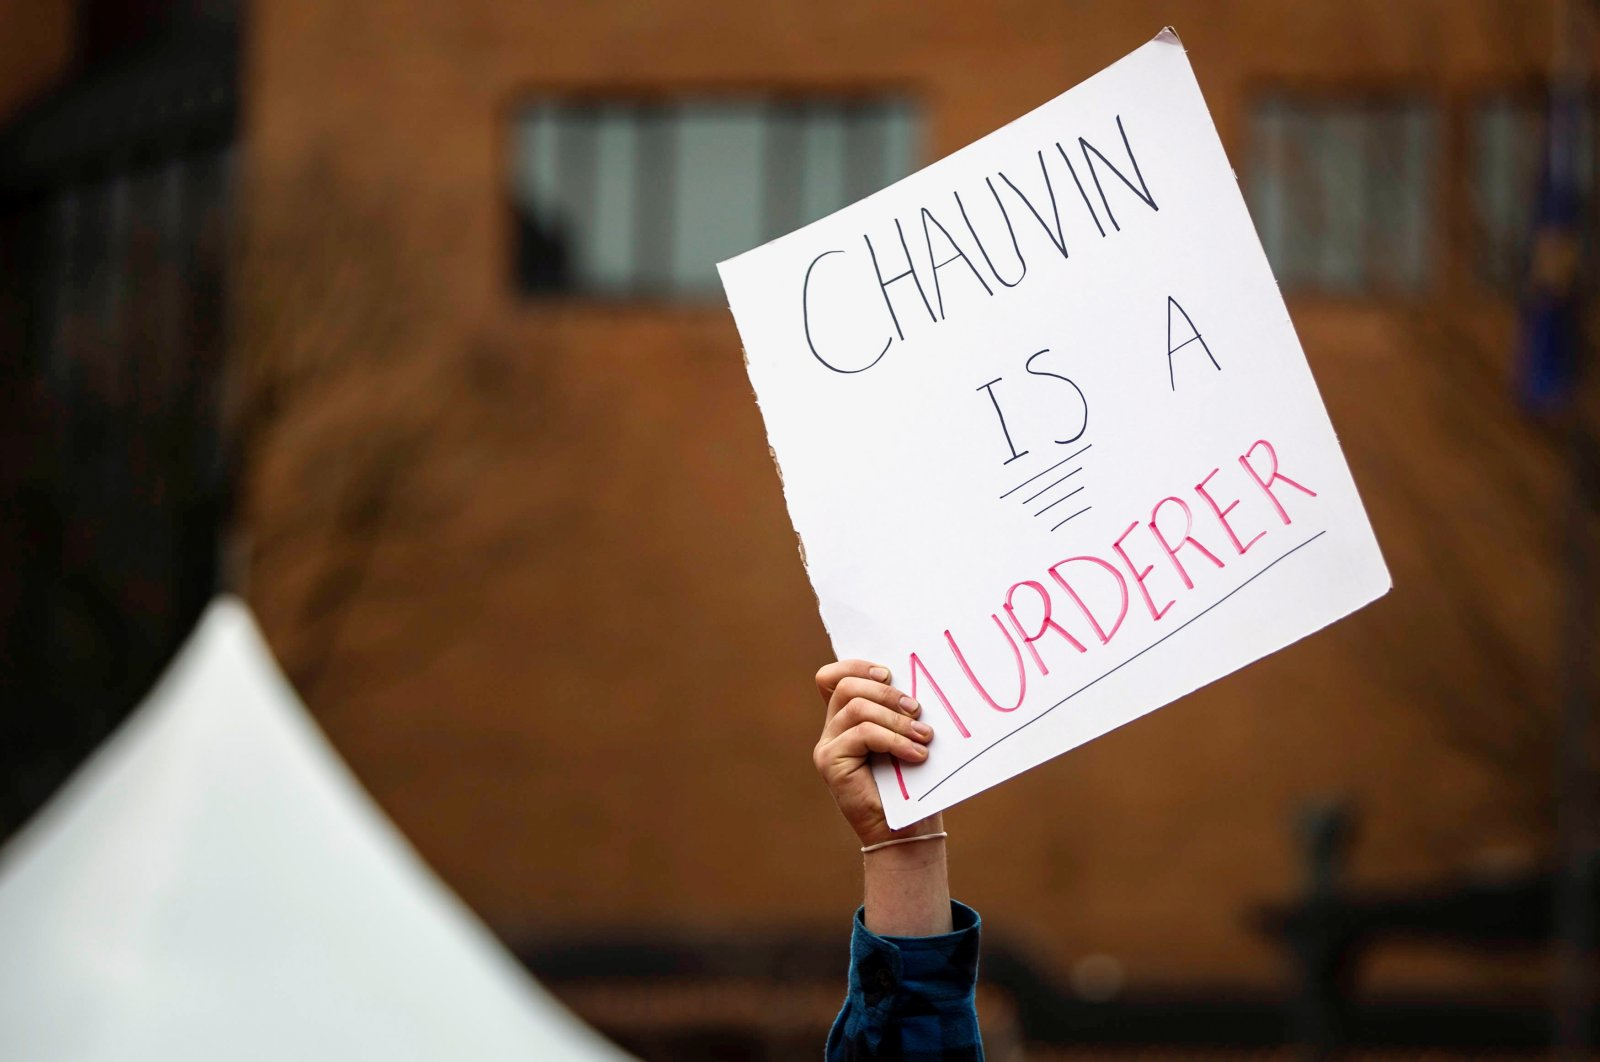 """A demonstrator holds a sign reading """"Chauvin is a murderer"""" during a march in Portland as jury selection begins in Minneapolis for the trial of Derek Chauvin, the former policeman accused of killing George Floyd, Oregon, U.S., March 8, 2021. (Reuters Photo)"""